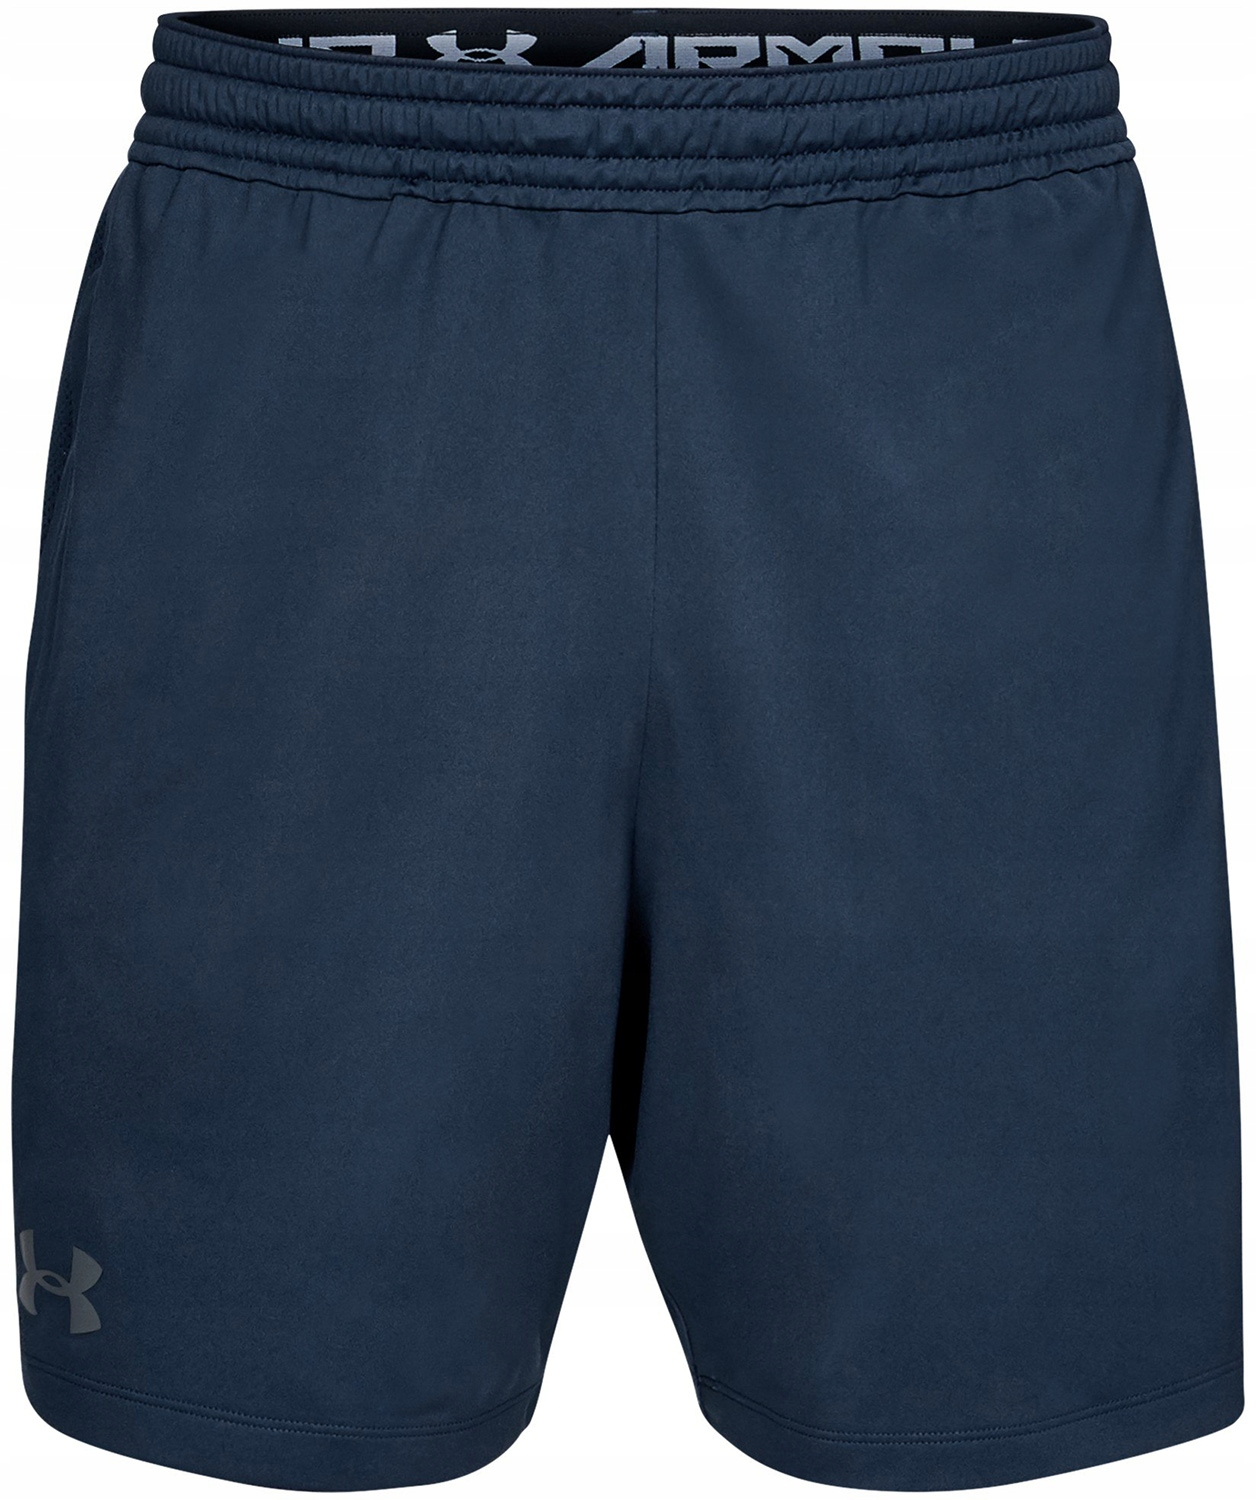 Under Armour MK1 Shorts 7in Navy # L (1312292-408)